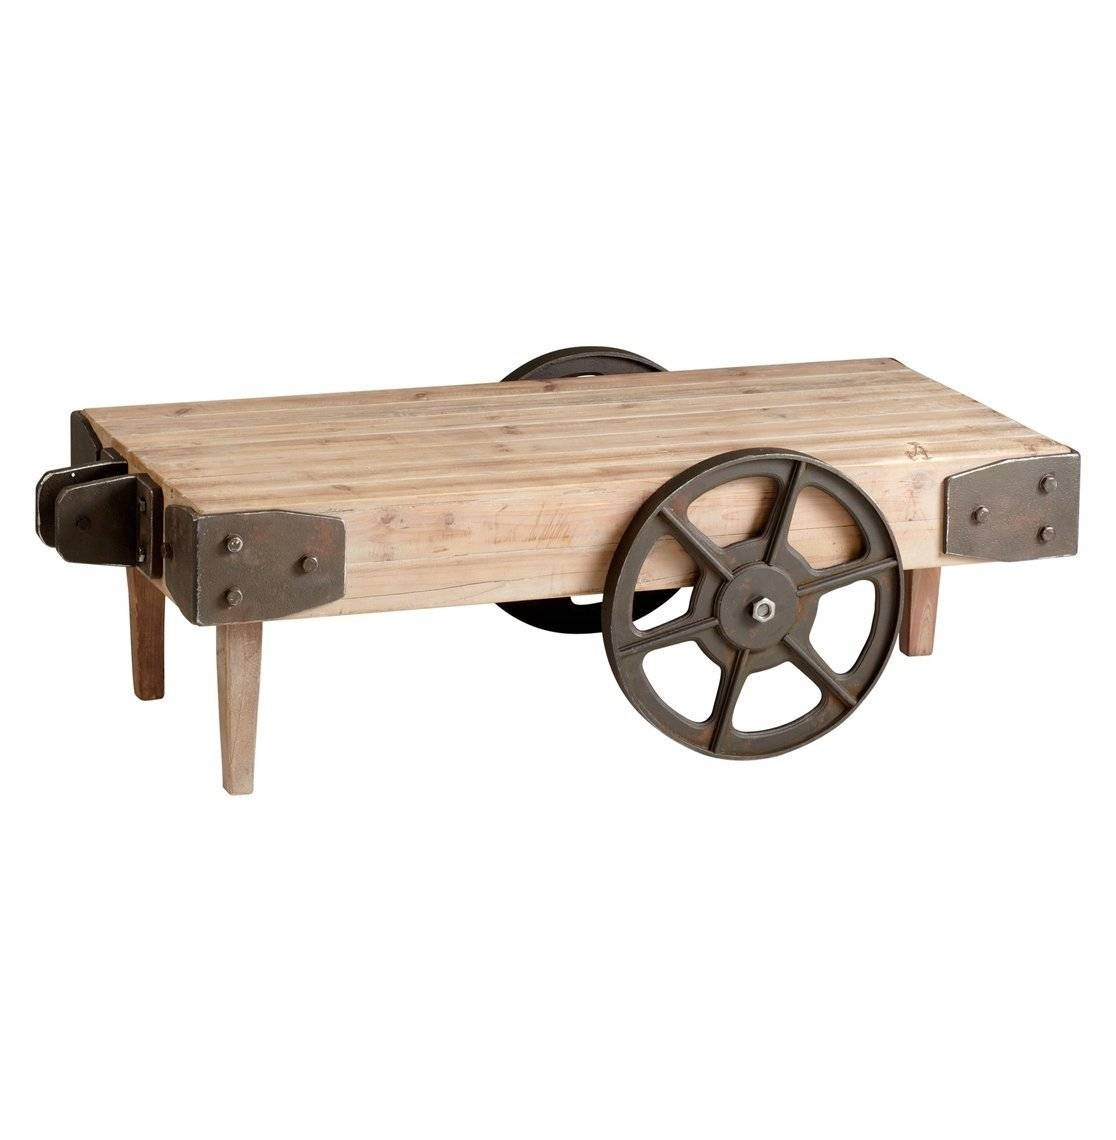 Popular Of Short Coffee Table With Short Coffee Tables. Furniture throughout Rustic Coffee Table With Wheels (Image 22 of 30)